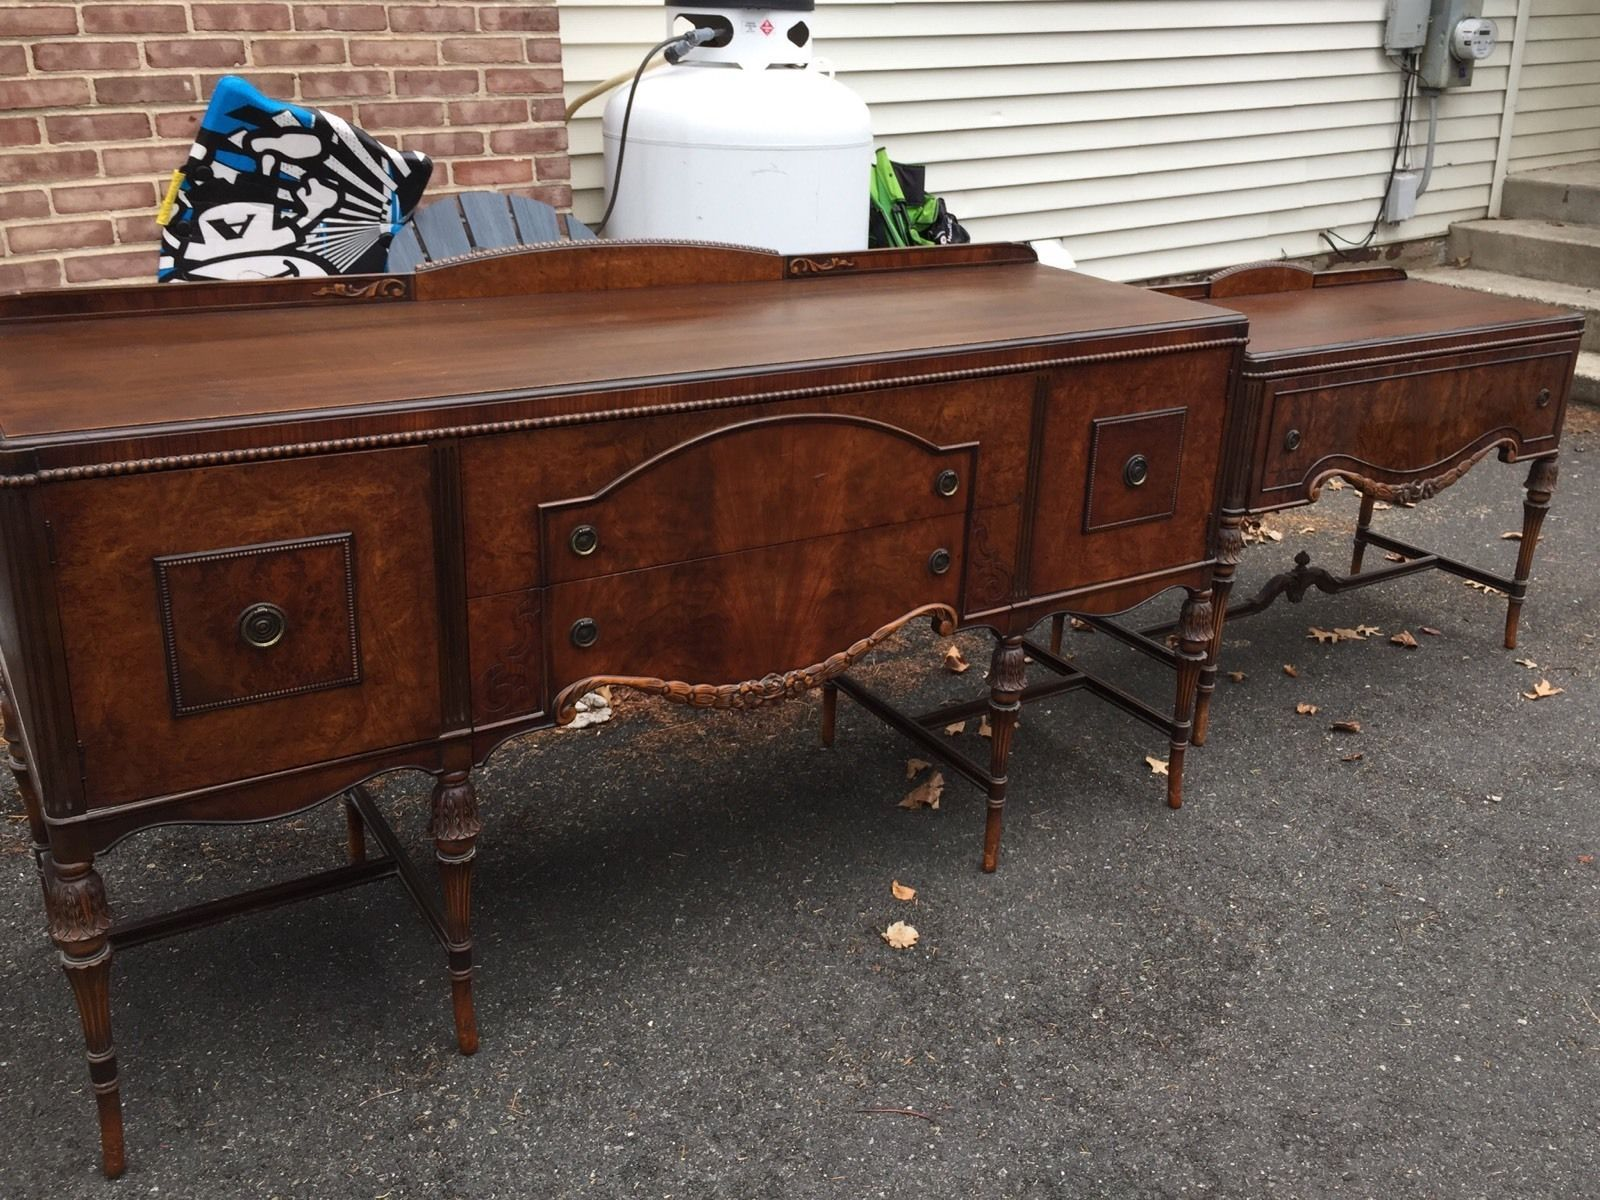 BERKEY   GAY ANTIQUE MAHOGANY DETAILED BUFFET   SERVER VERY GOOD CONDITION   in Antiques. BERKEY   GAY ANTIQUE MAHOGANY DETAILED BUFFET   SERVER VERY GOOD